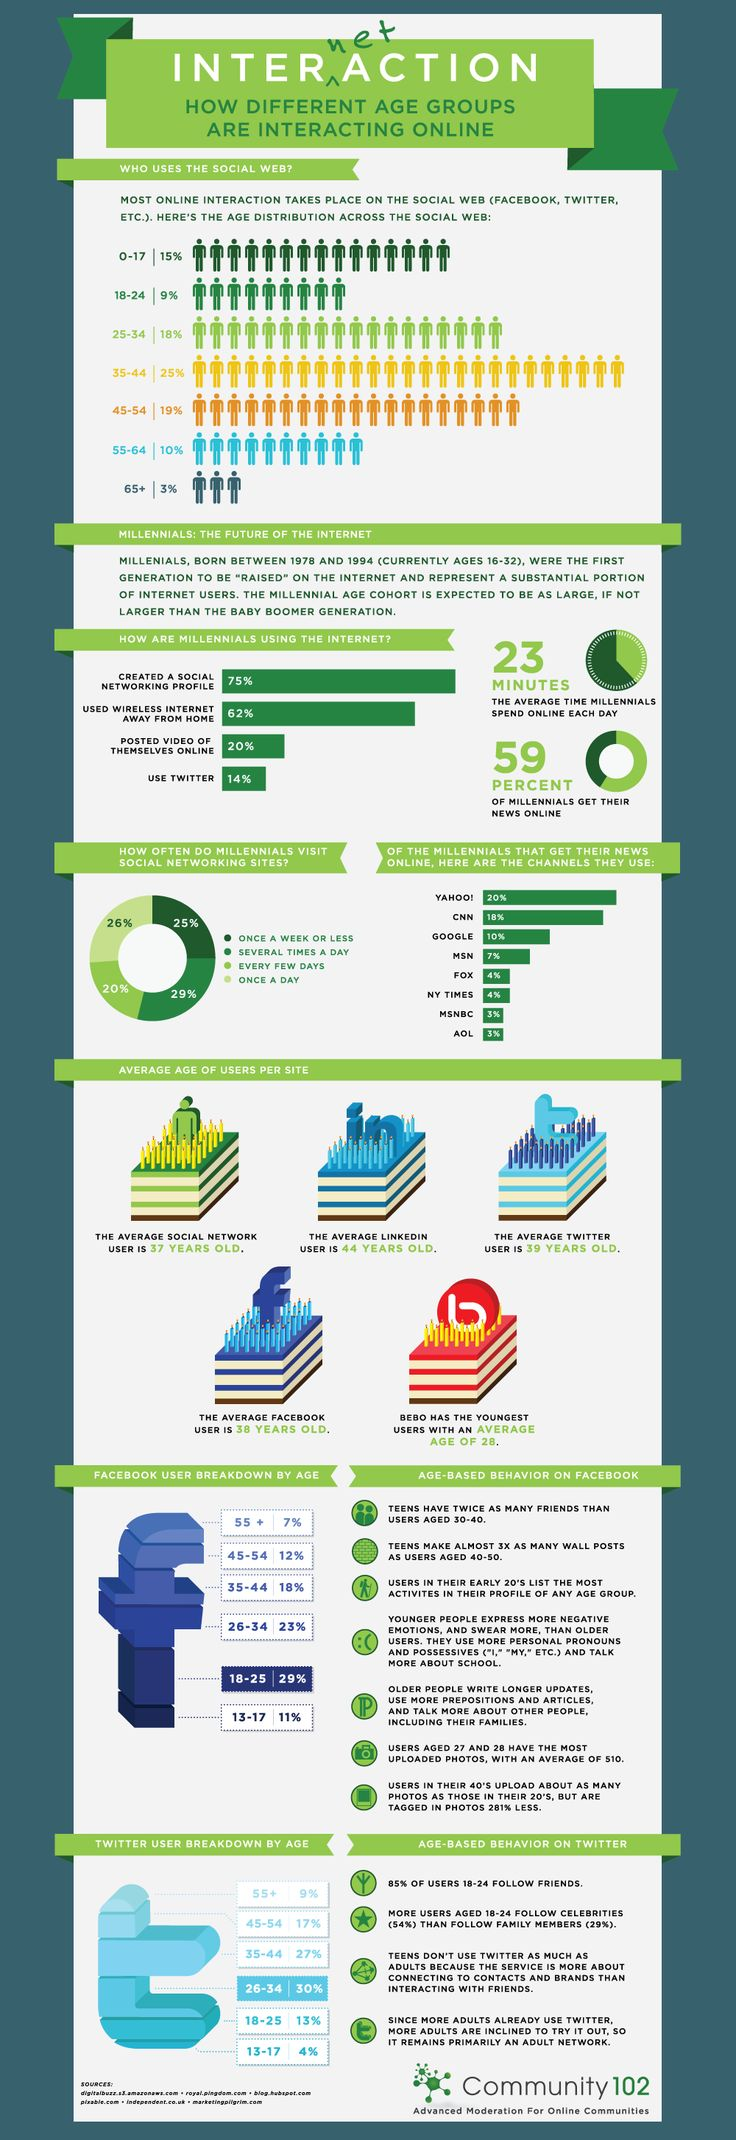 How different age groups interact online #infographic #demographics